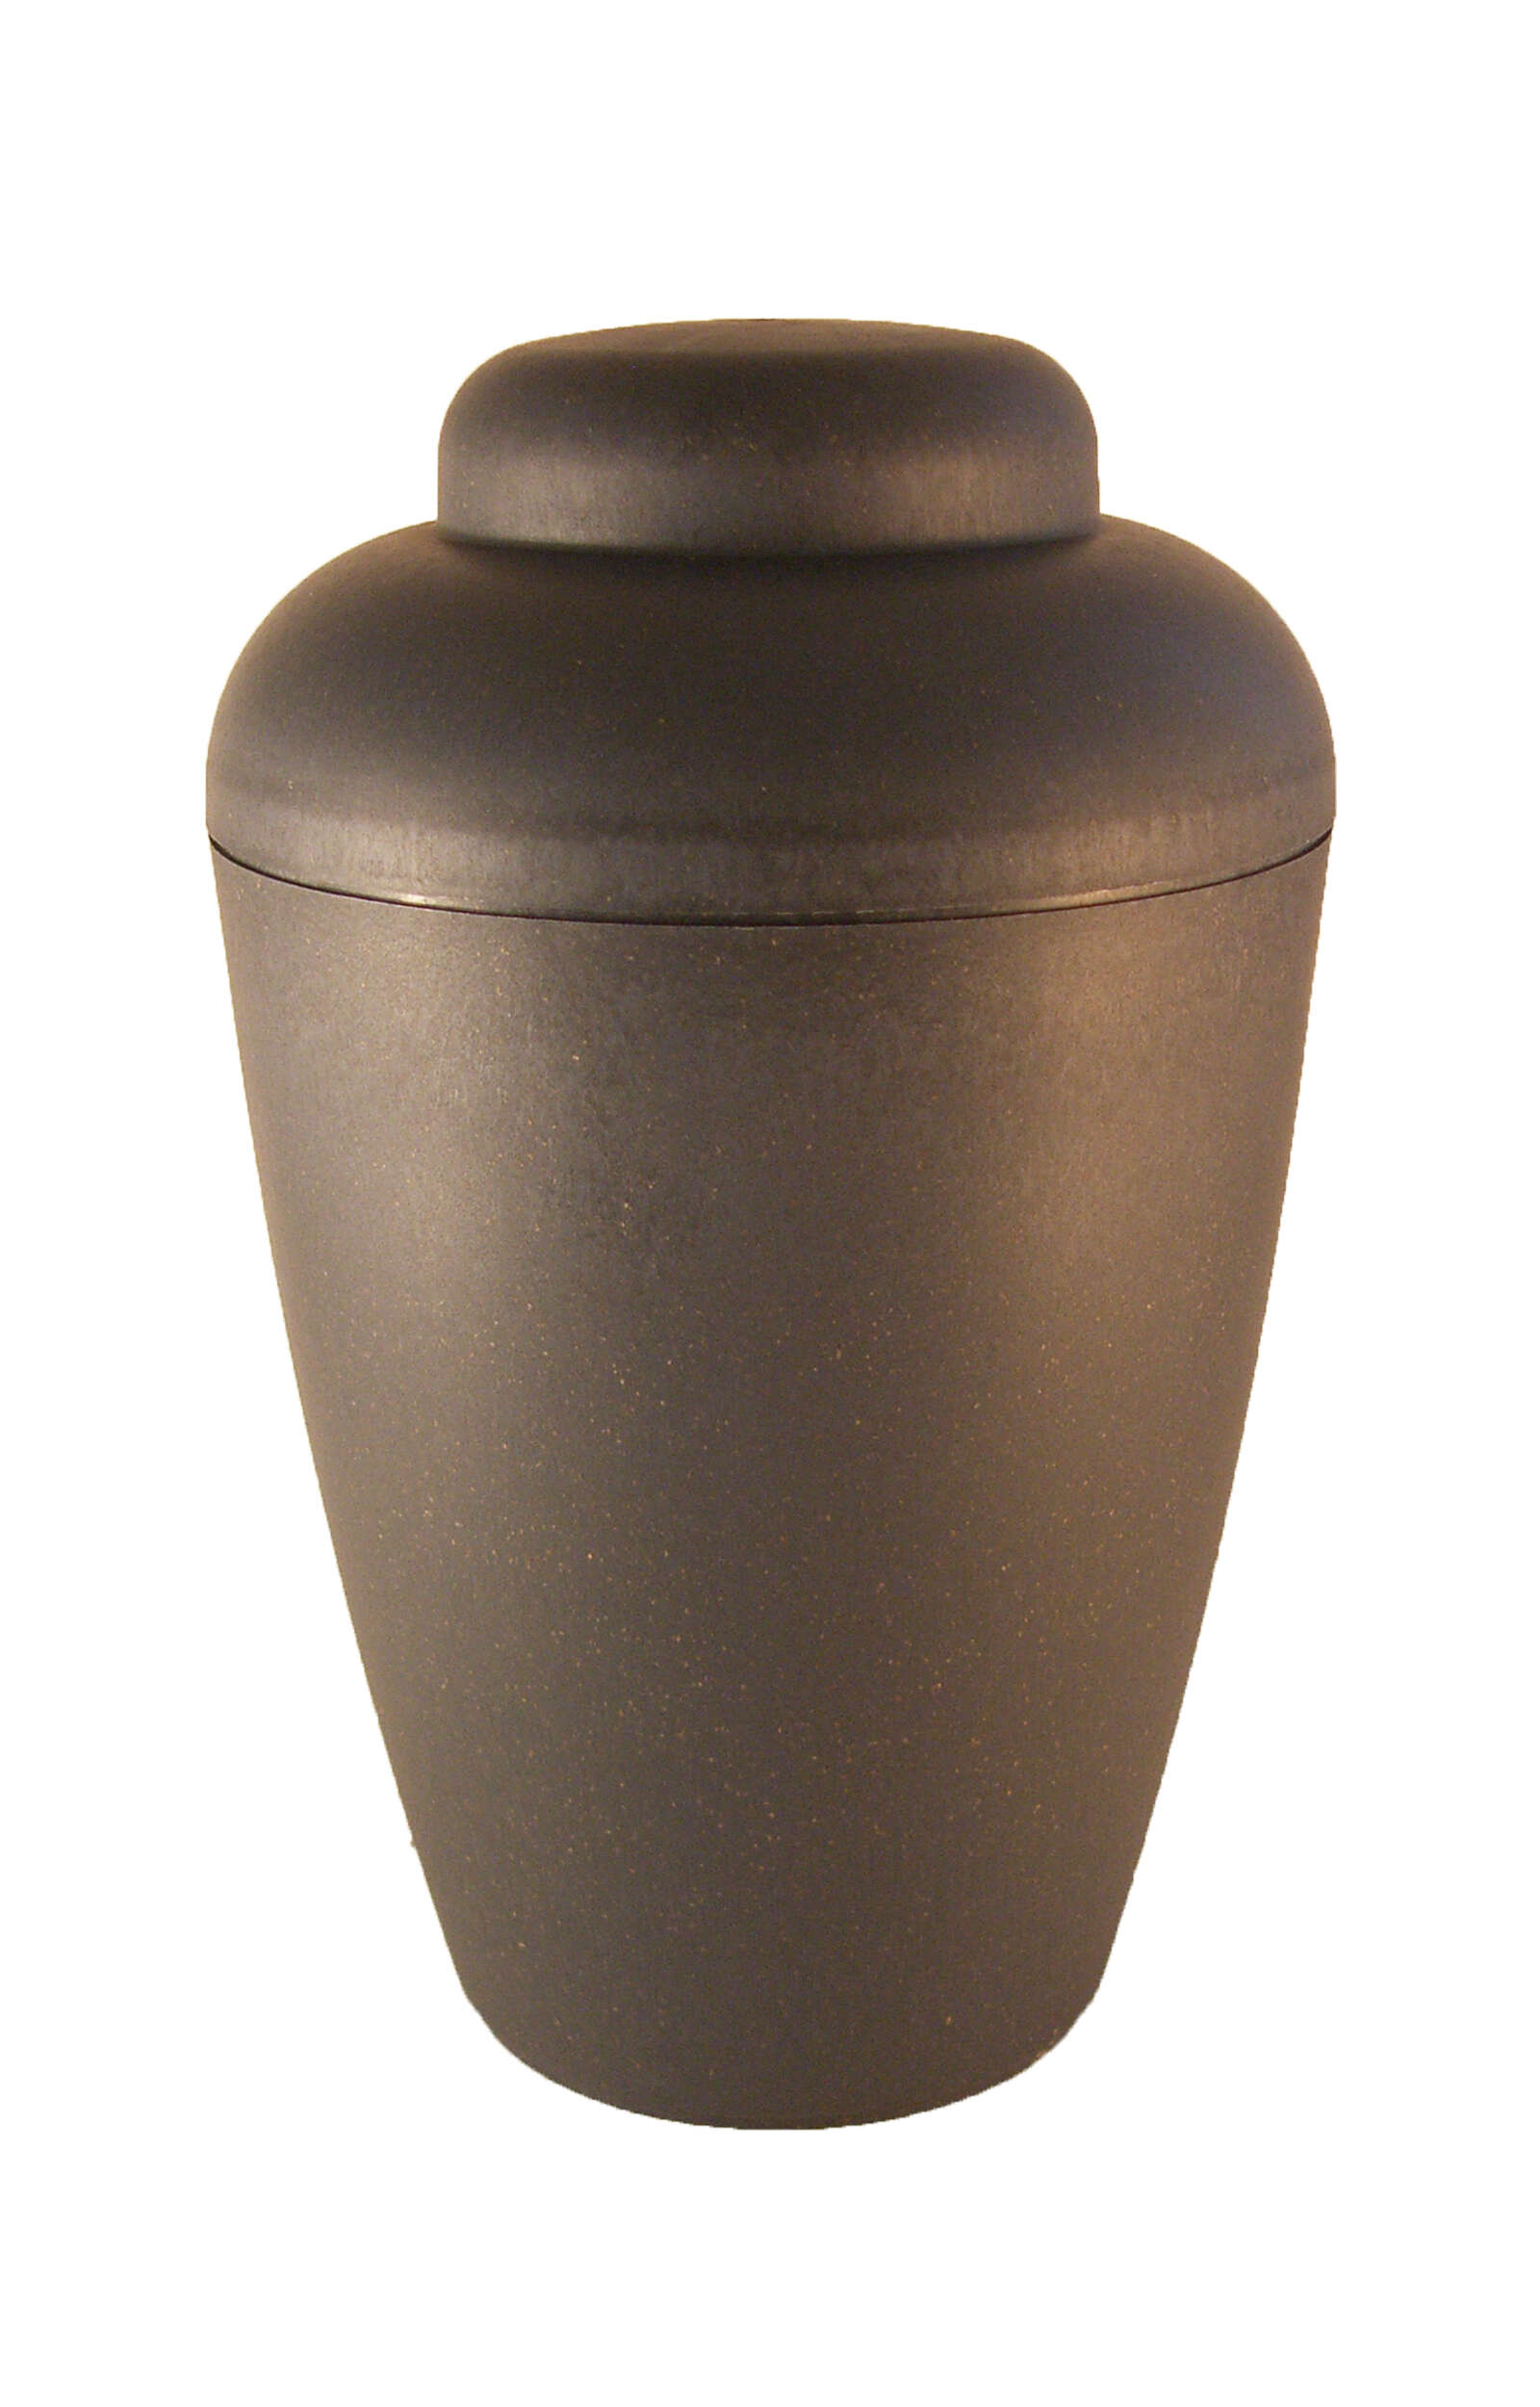 en BVG1406 biodigradable urn vale grey funeral urn for human ashes order now